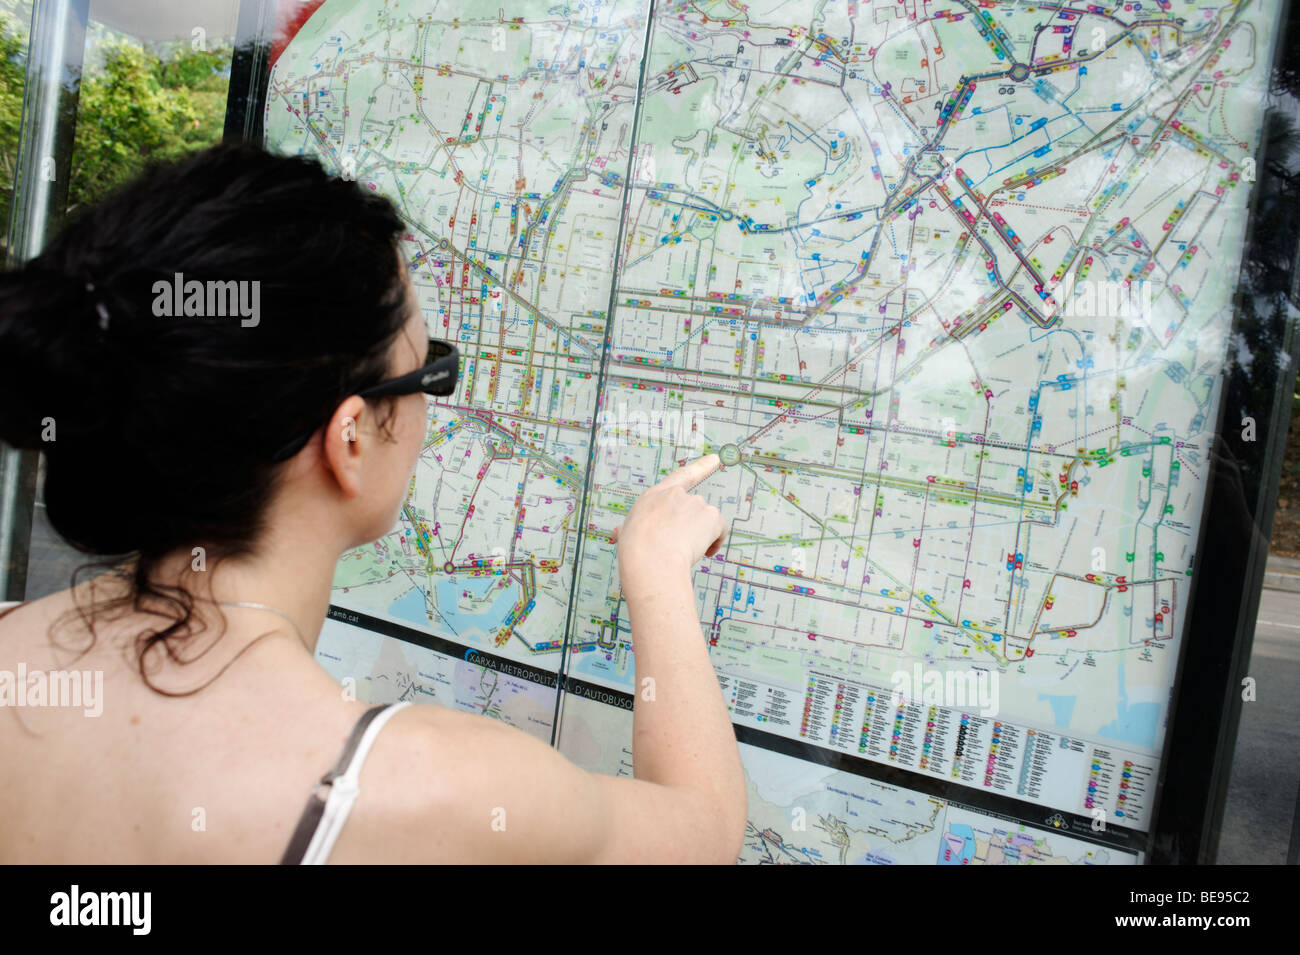 Woman studying a Barcelona city public transport map. Spain - Stock Image